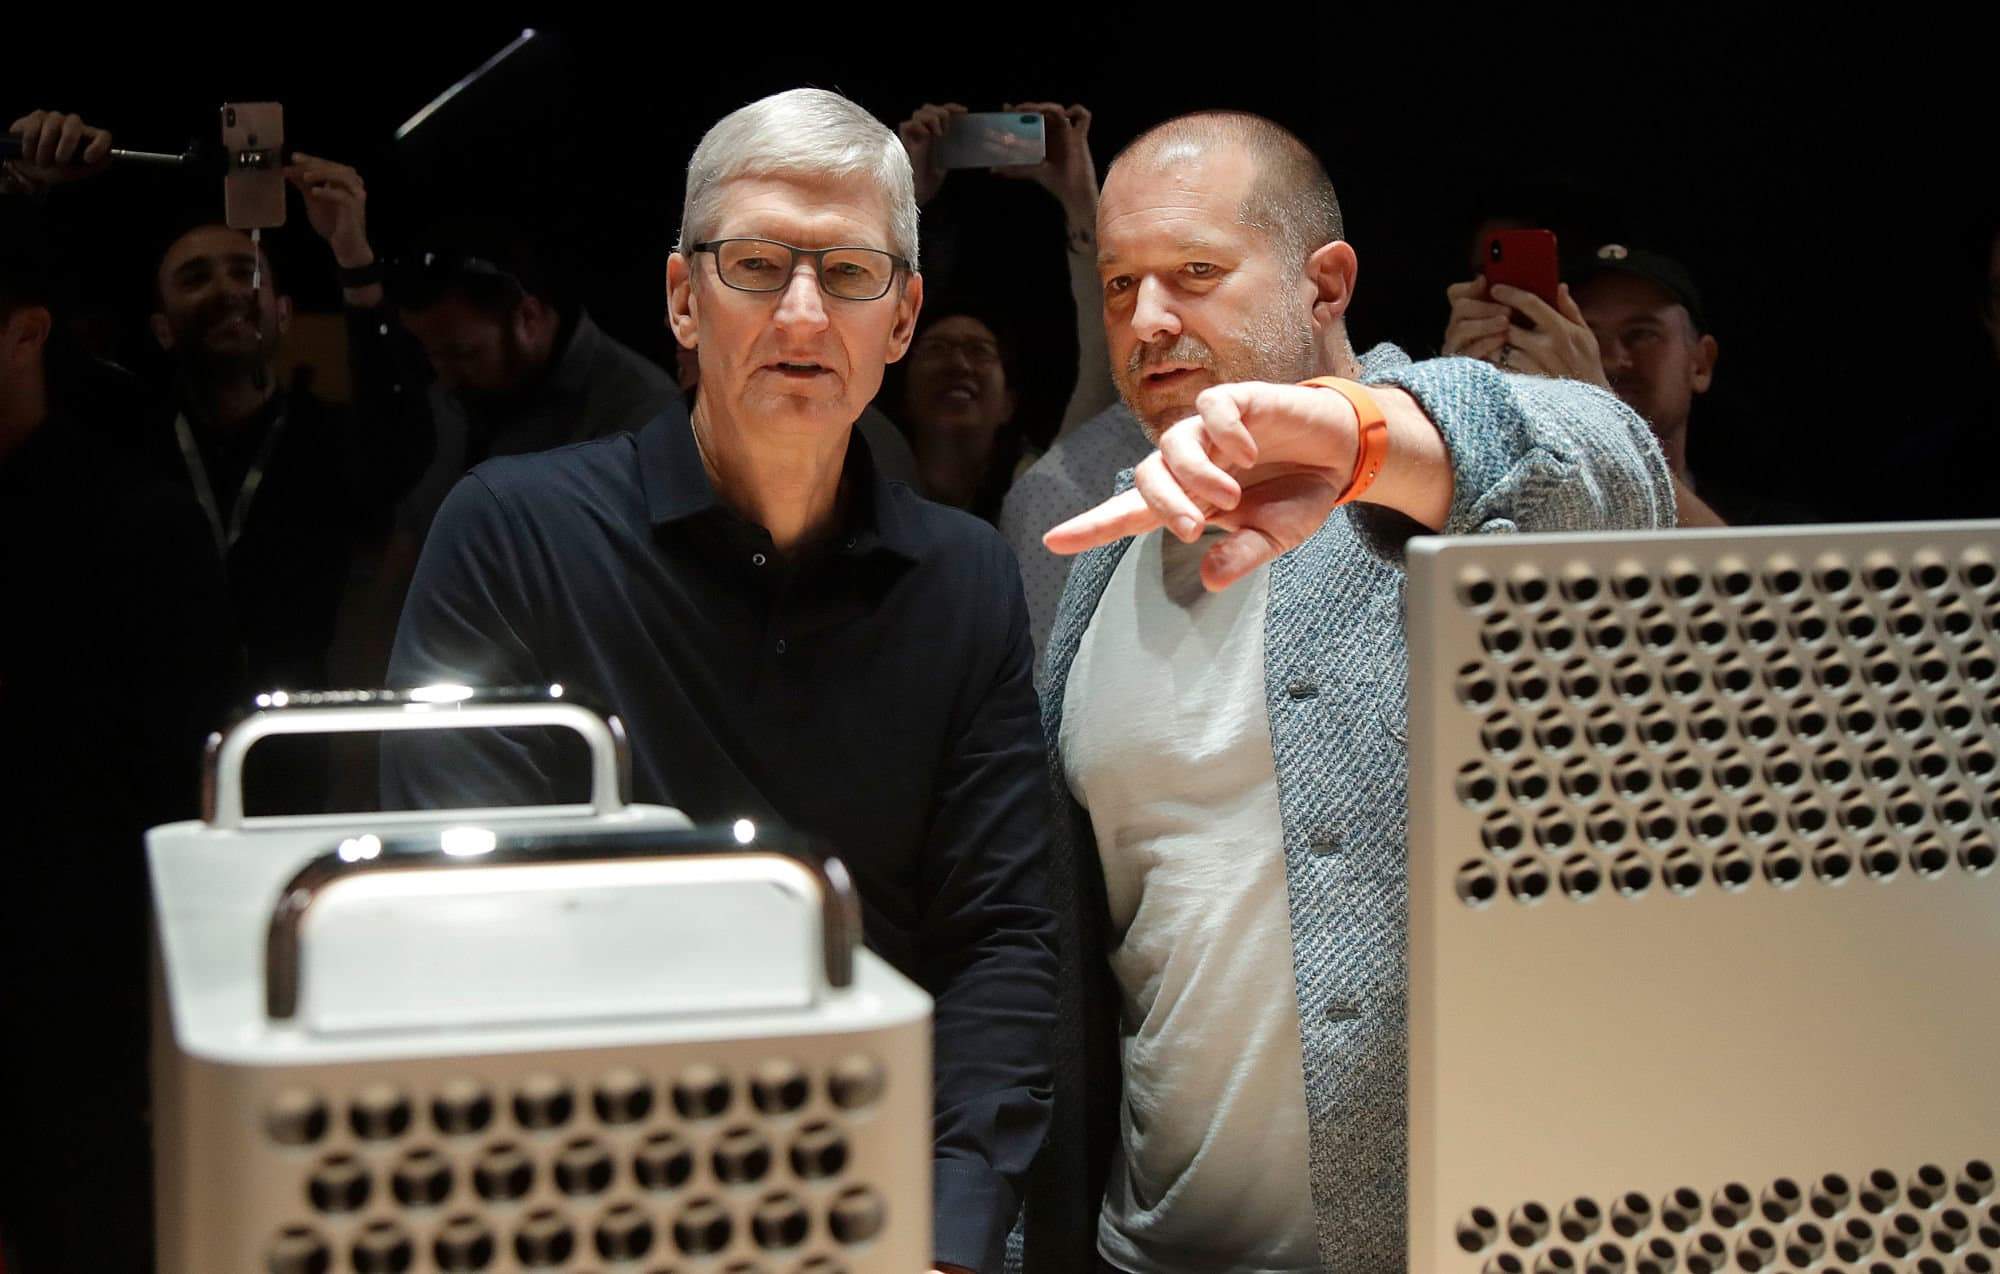 Apple Jony Ive Leaving